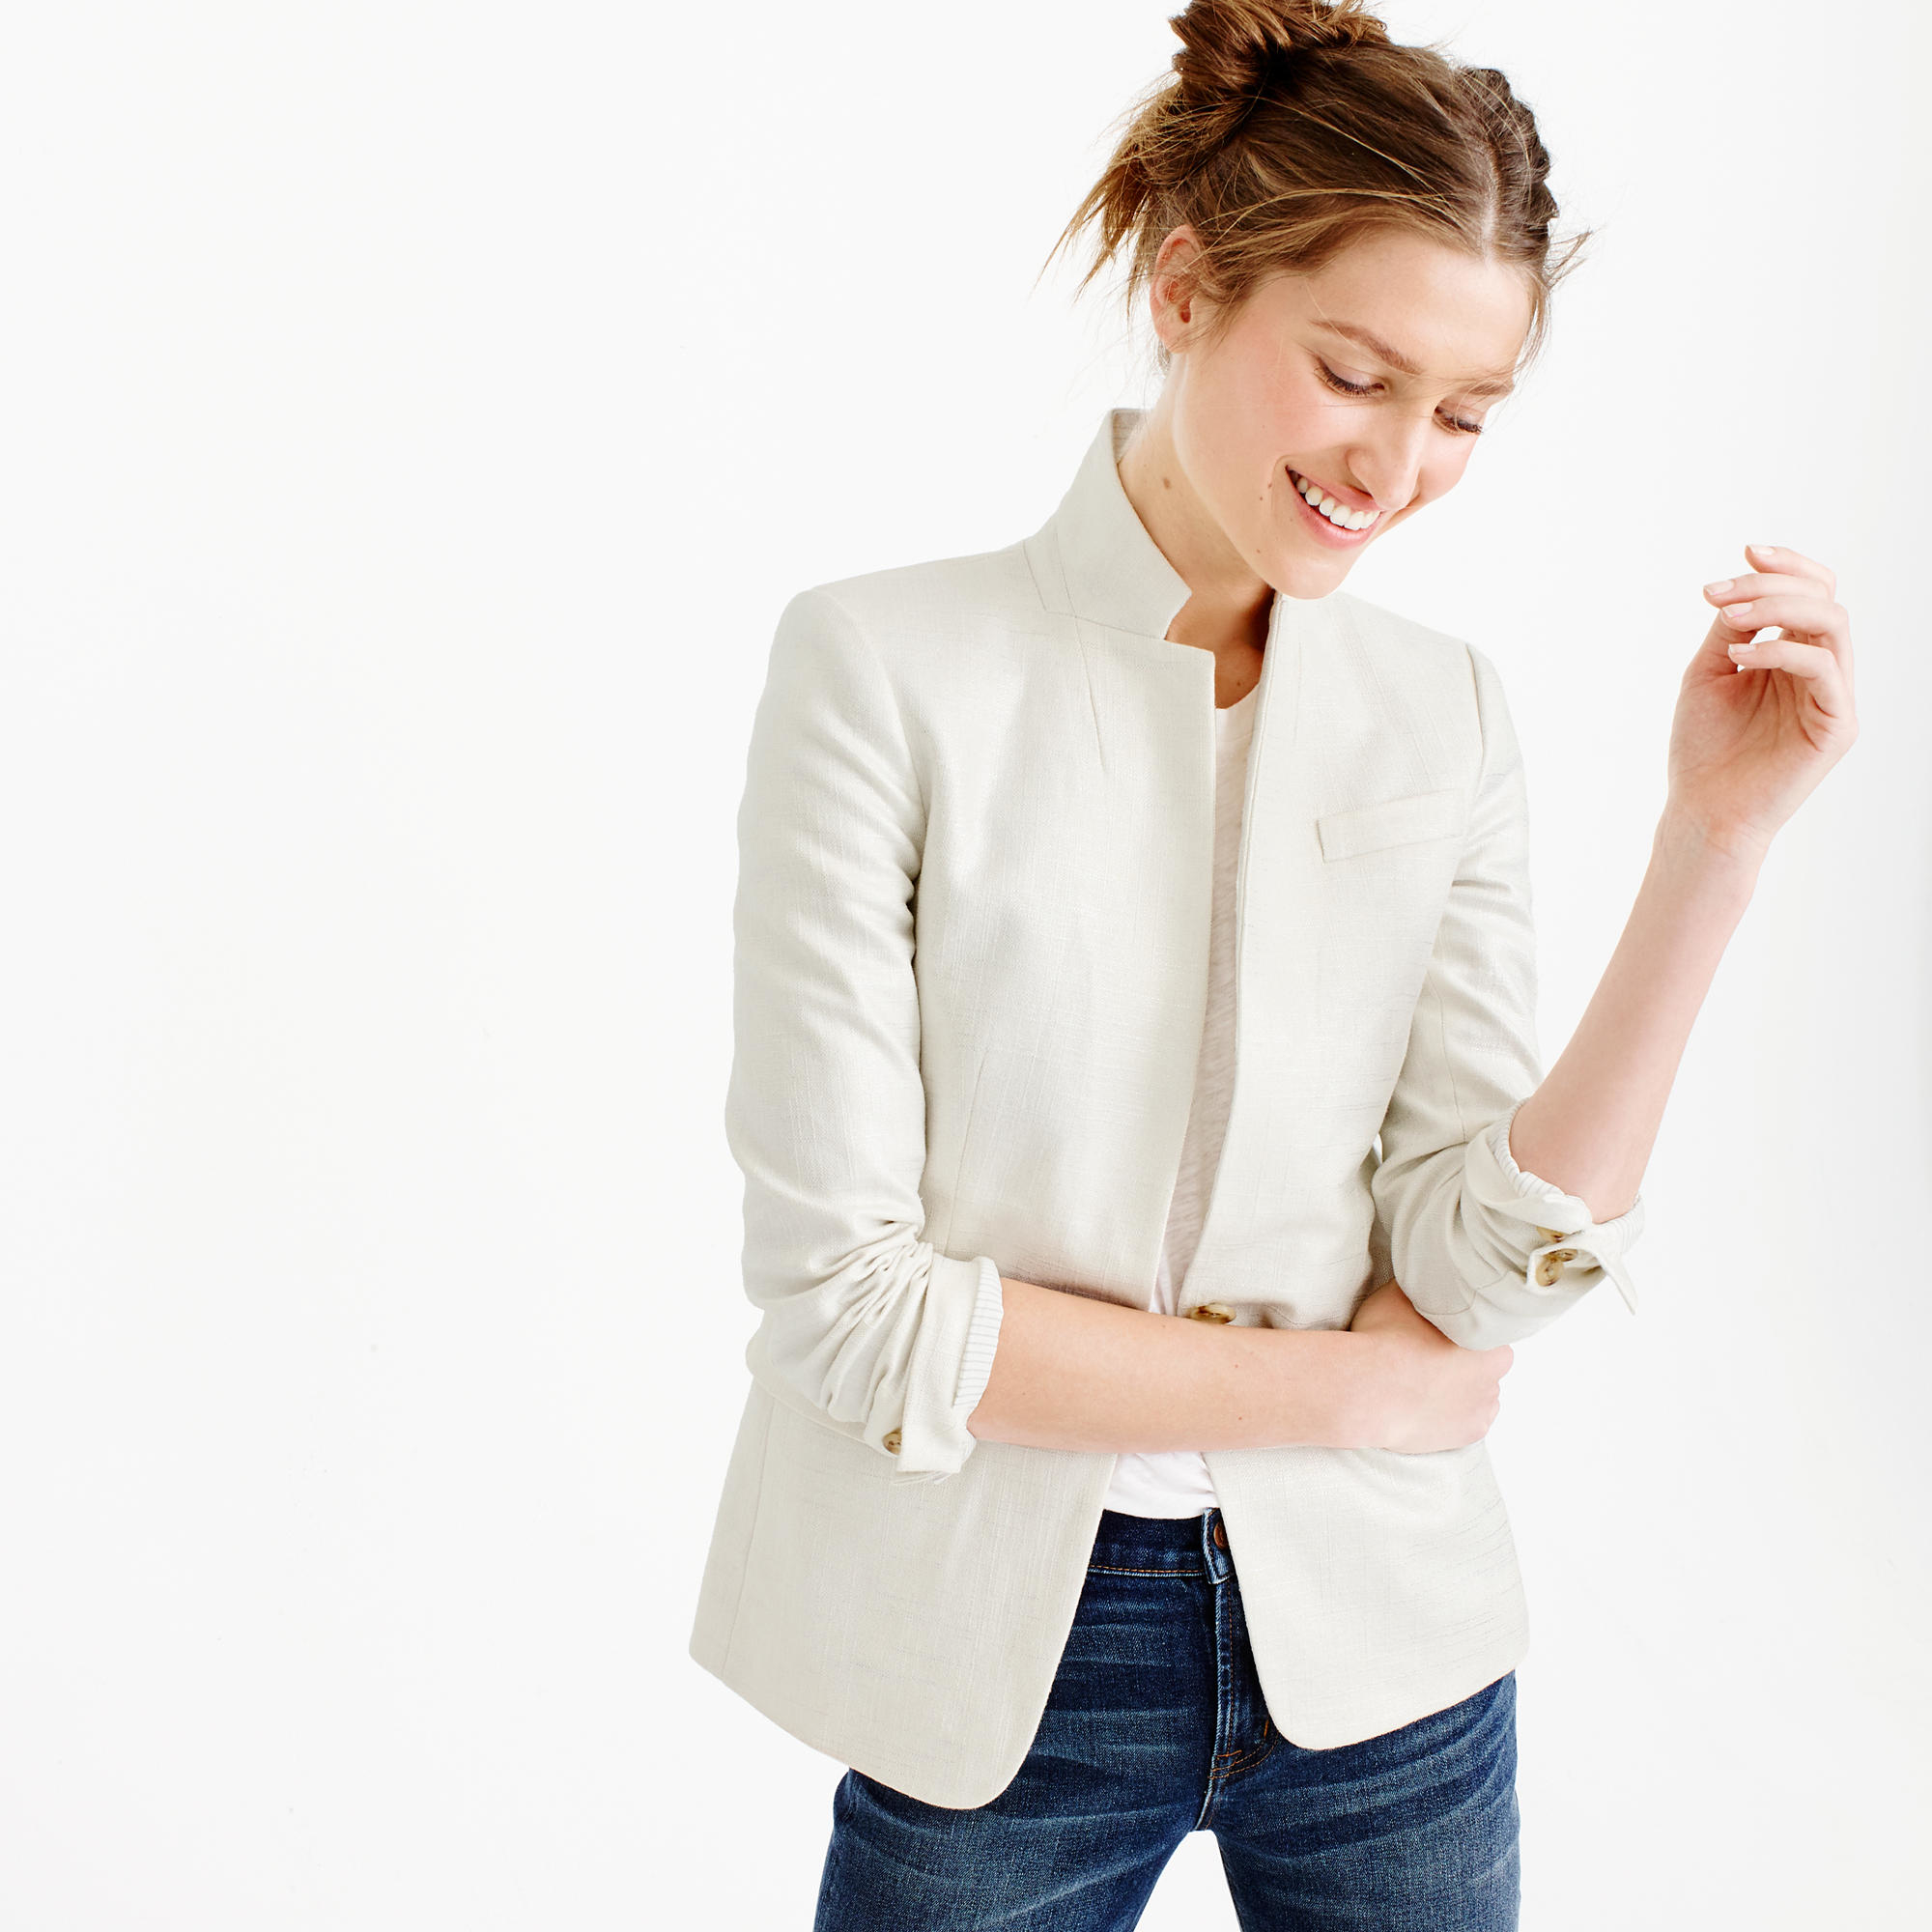 MISSY Linen Clothing - Shop our selection of jacket at Vivid Linen. Let's Enjoy Today.